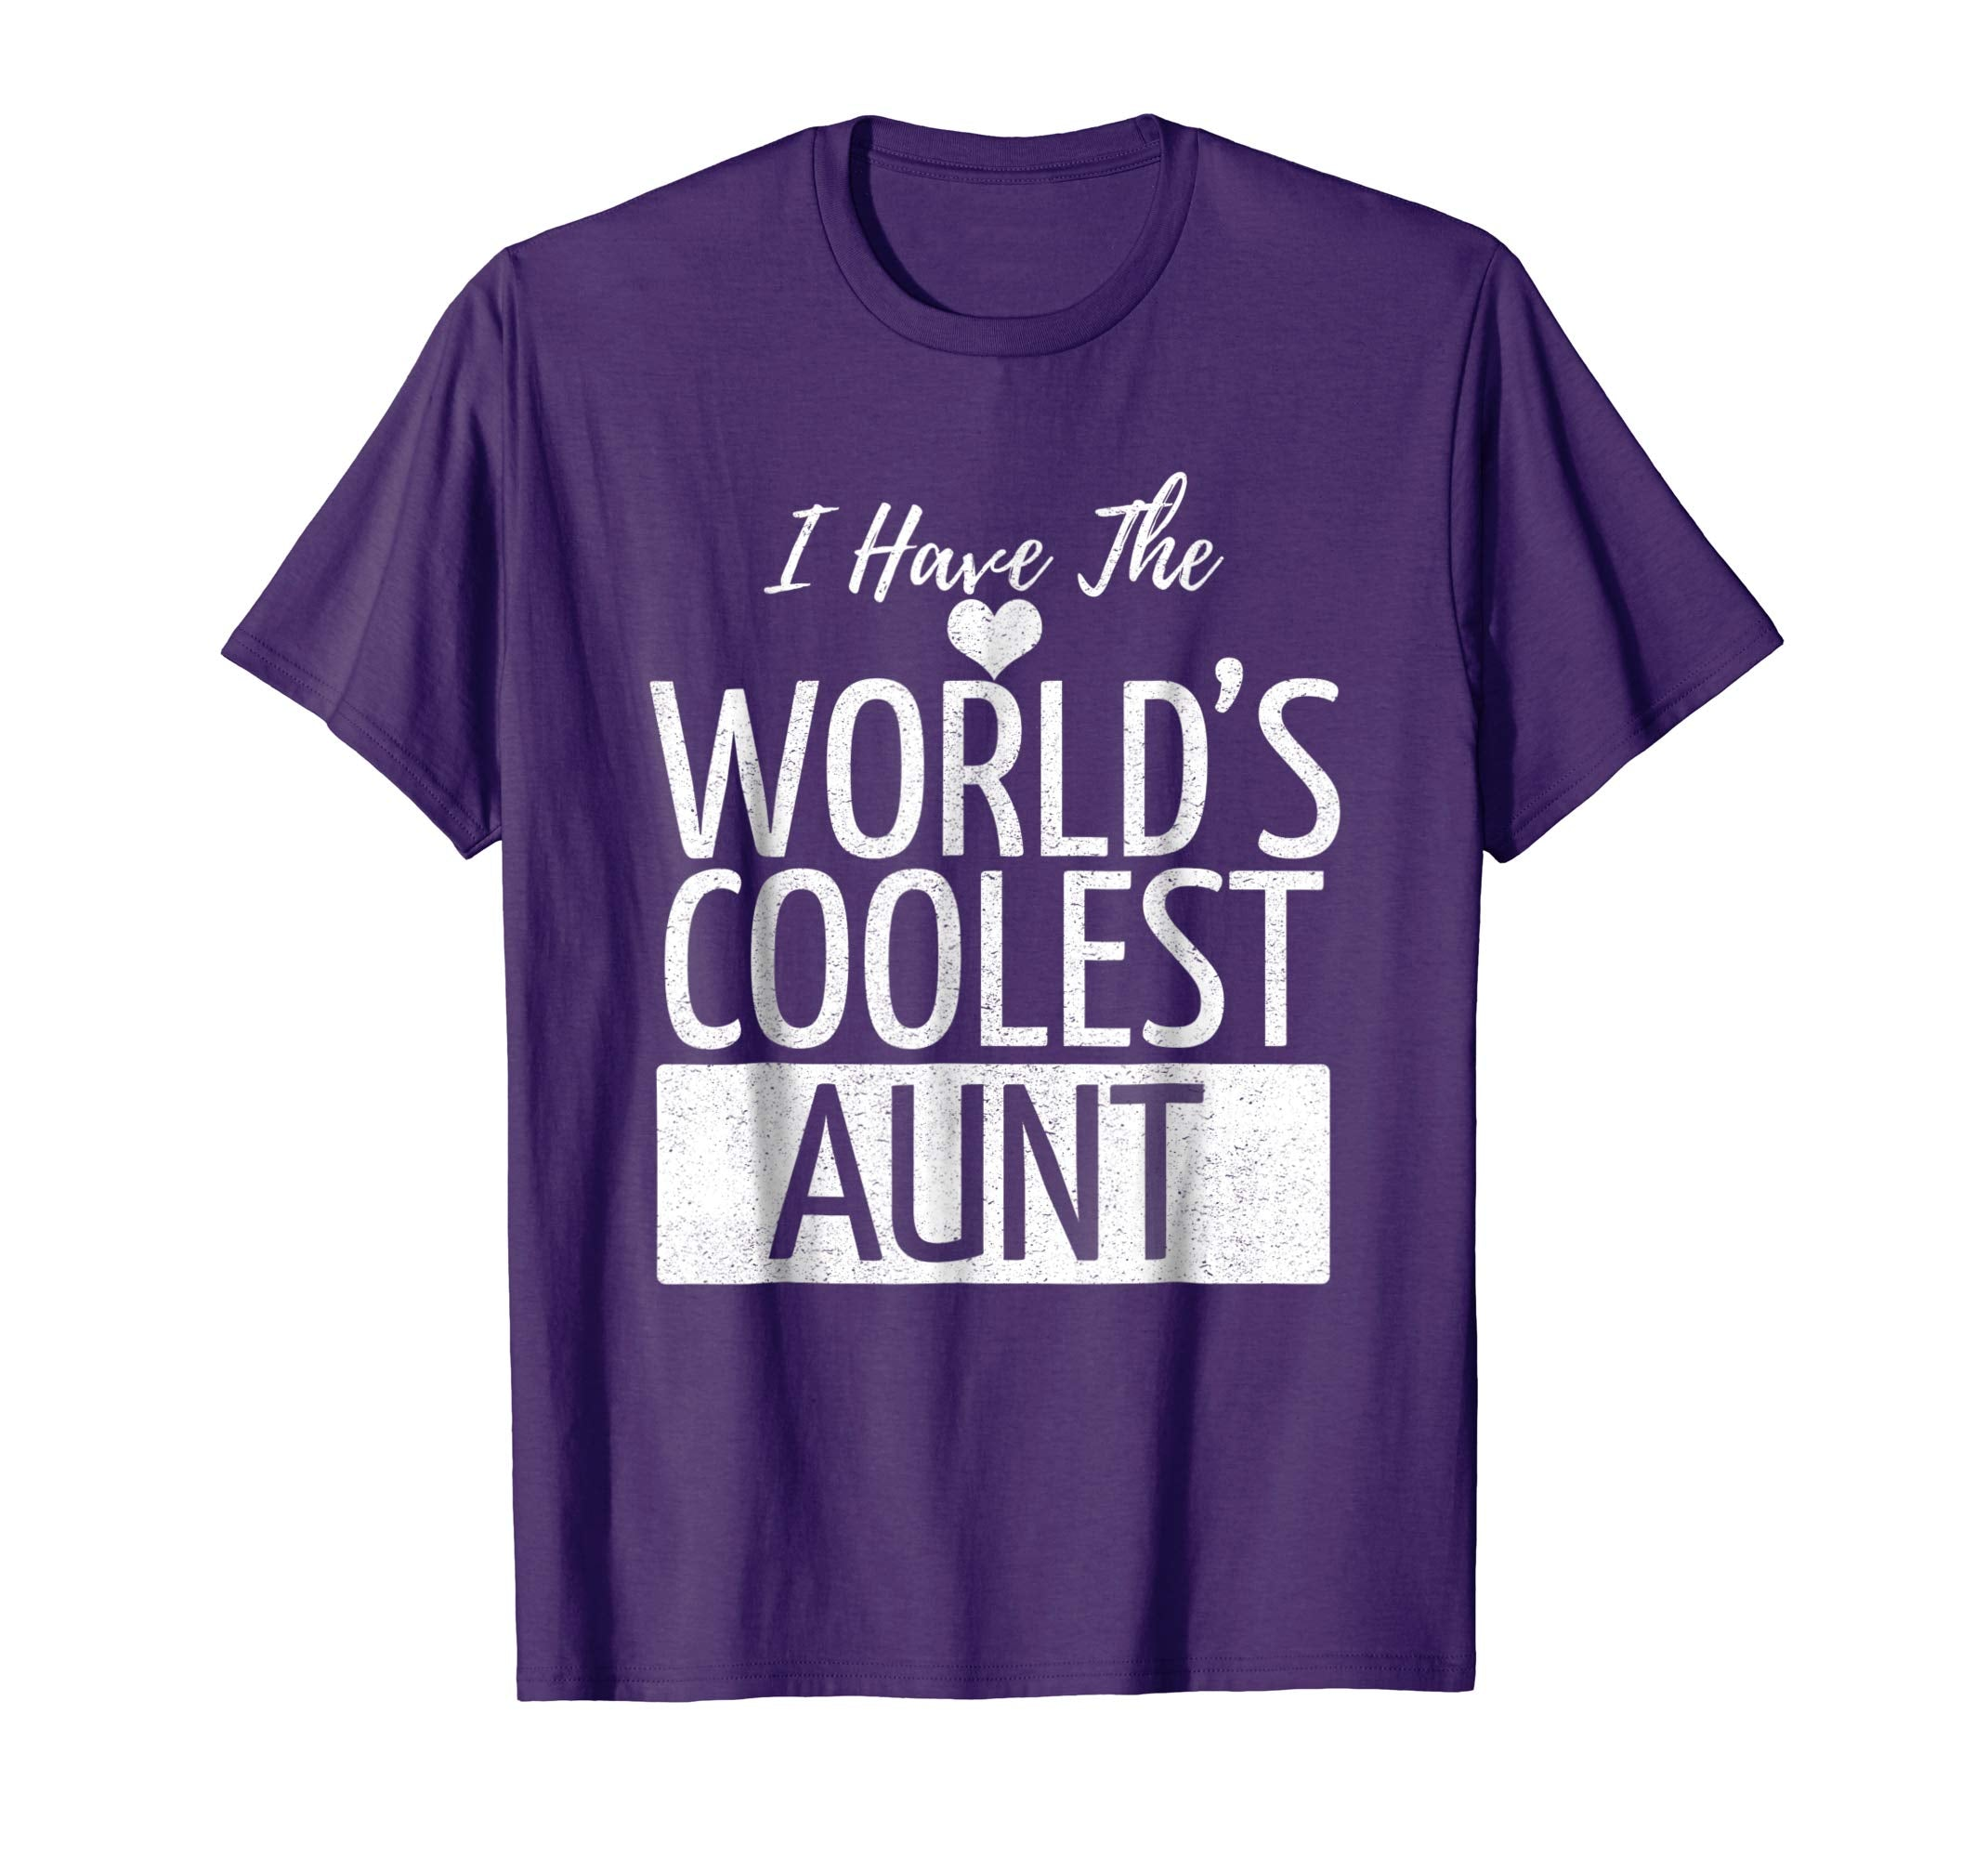 I Have The World's Coolest Aunt T-Shirt